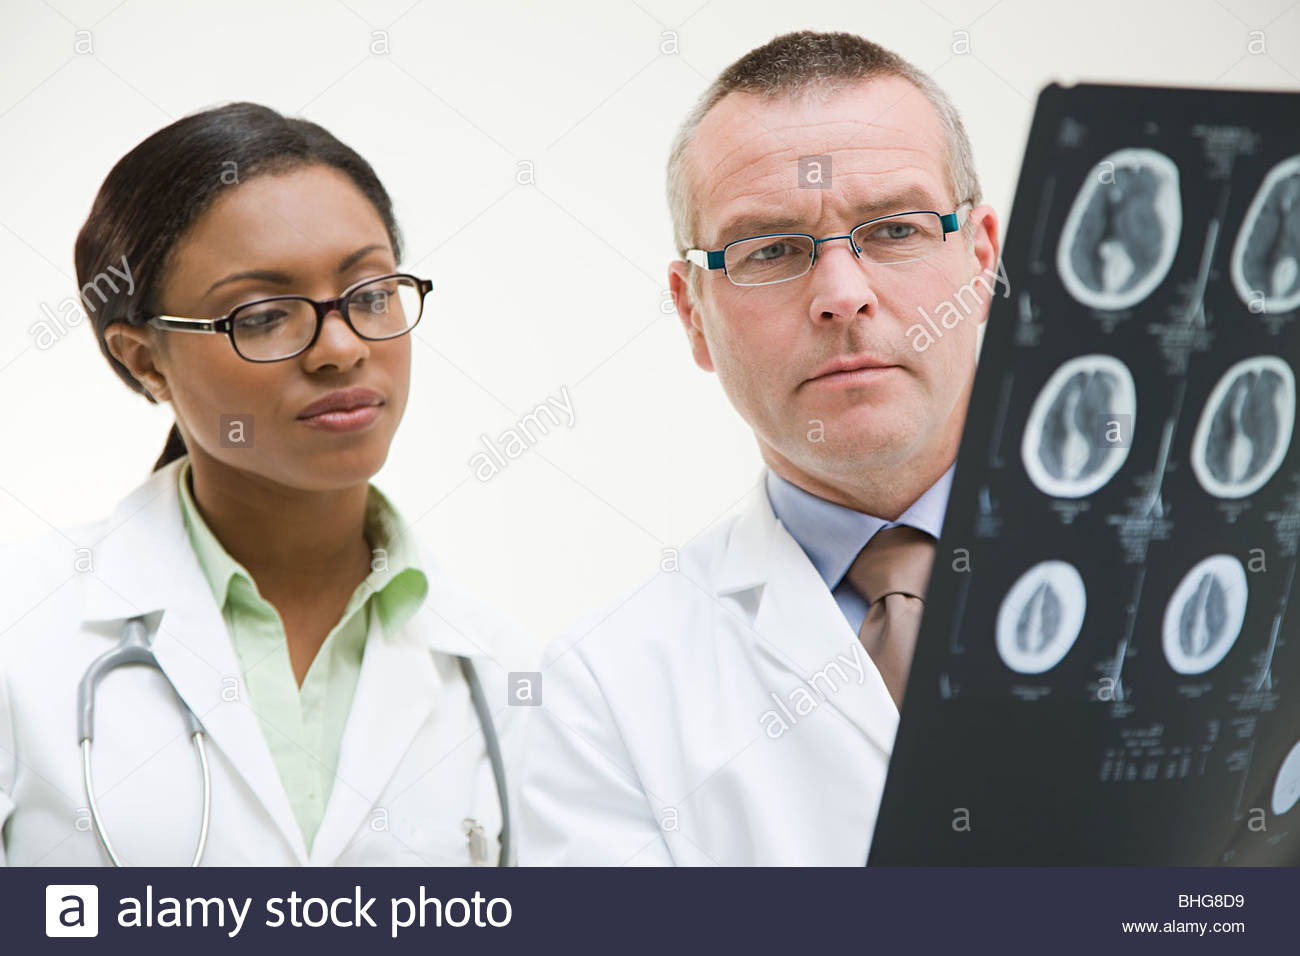 Doctors looking at mri scan - Stock Image